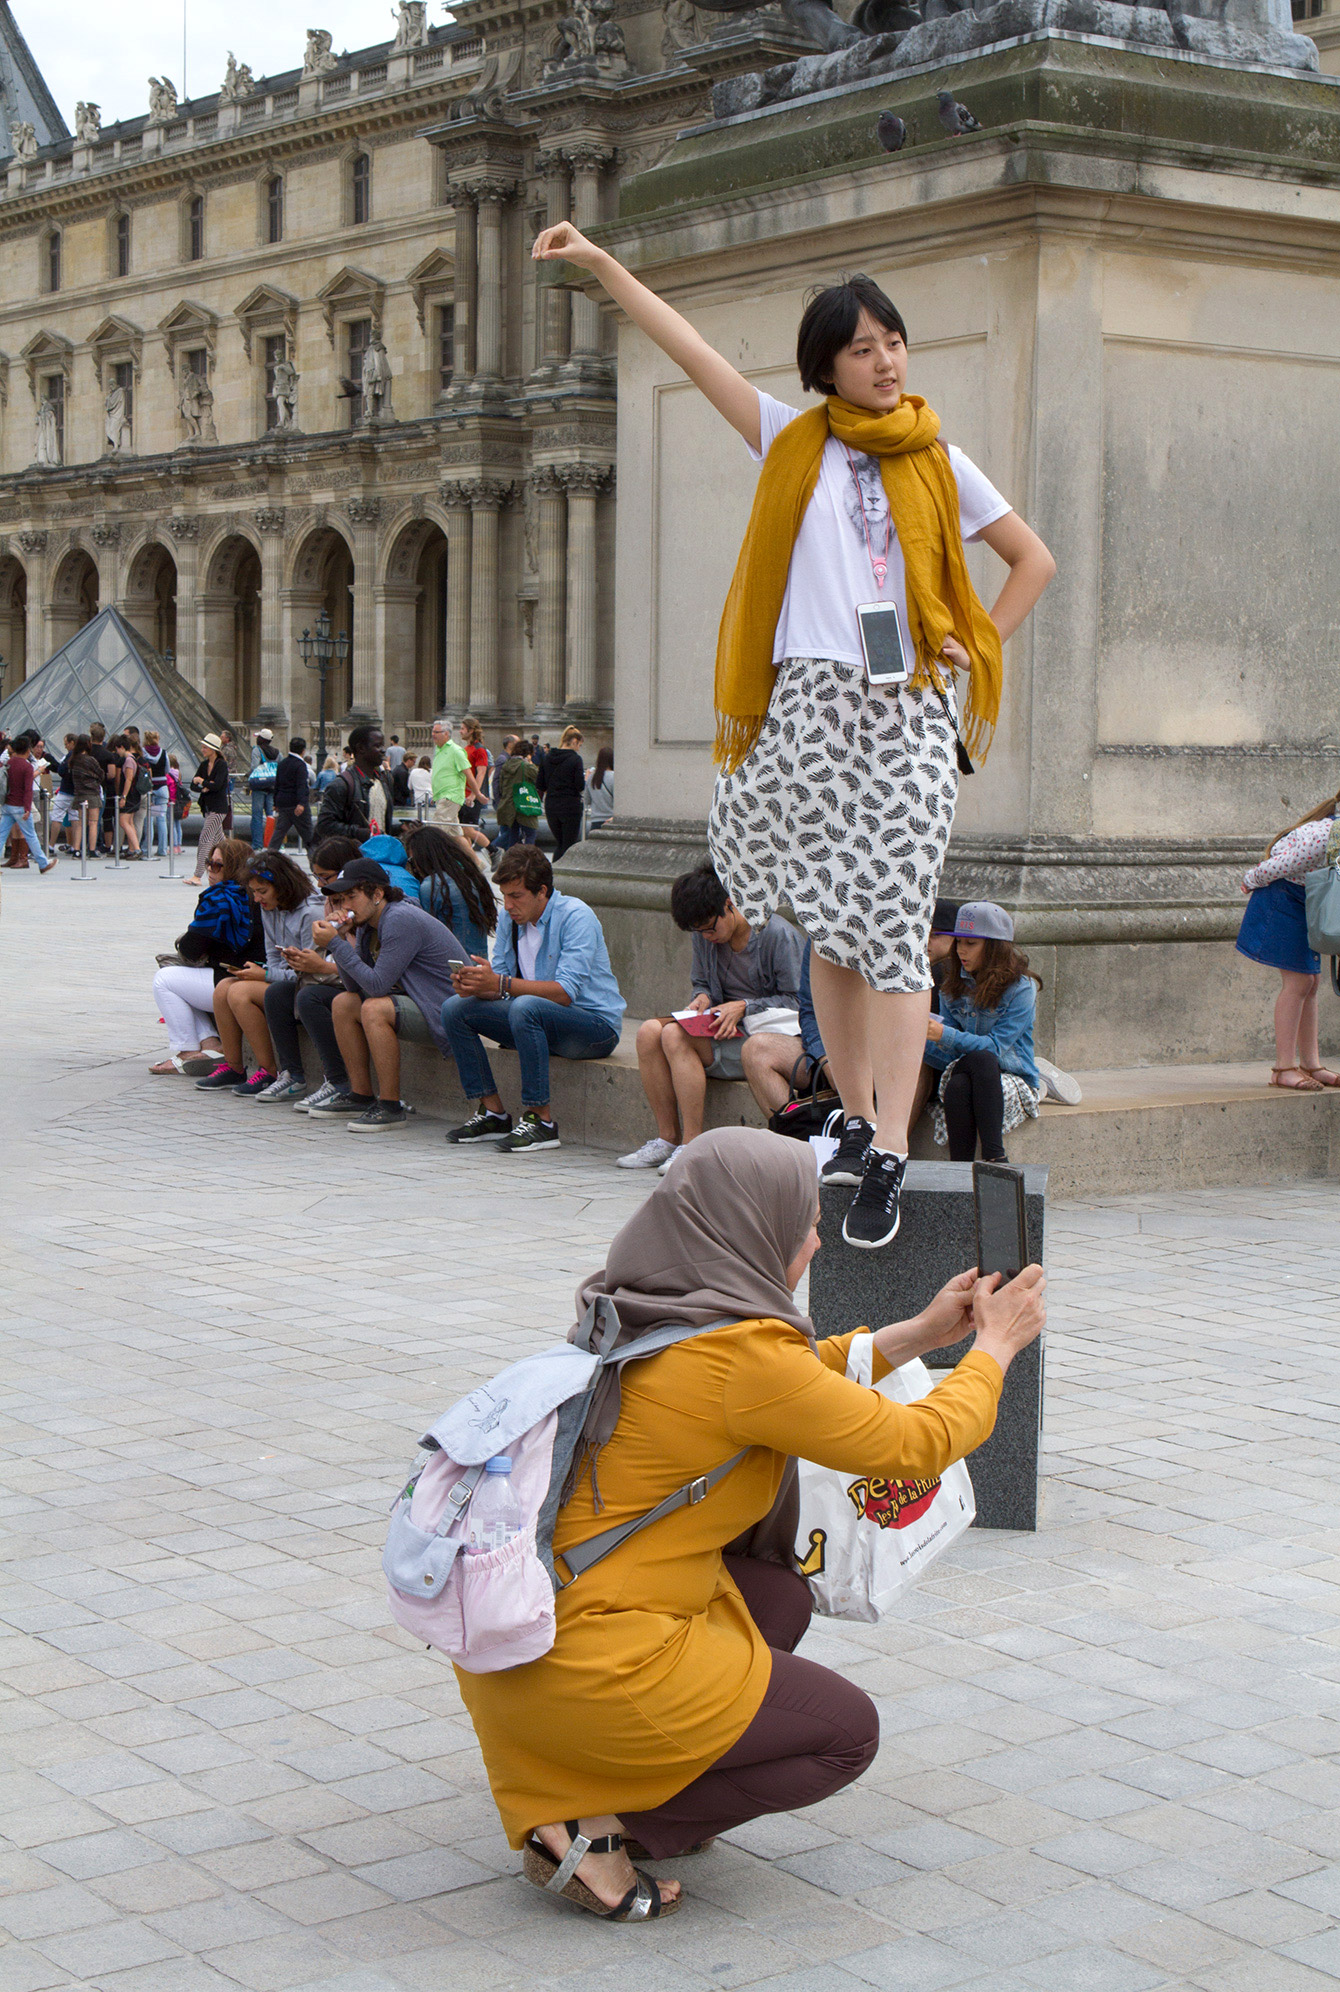 people-on-iphones-louvre